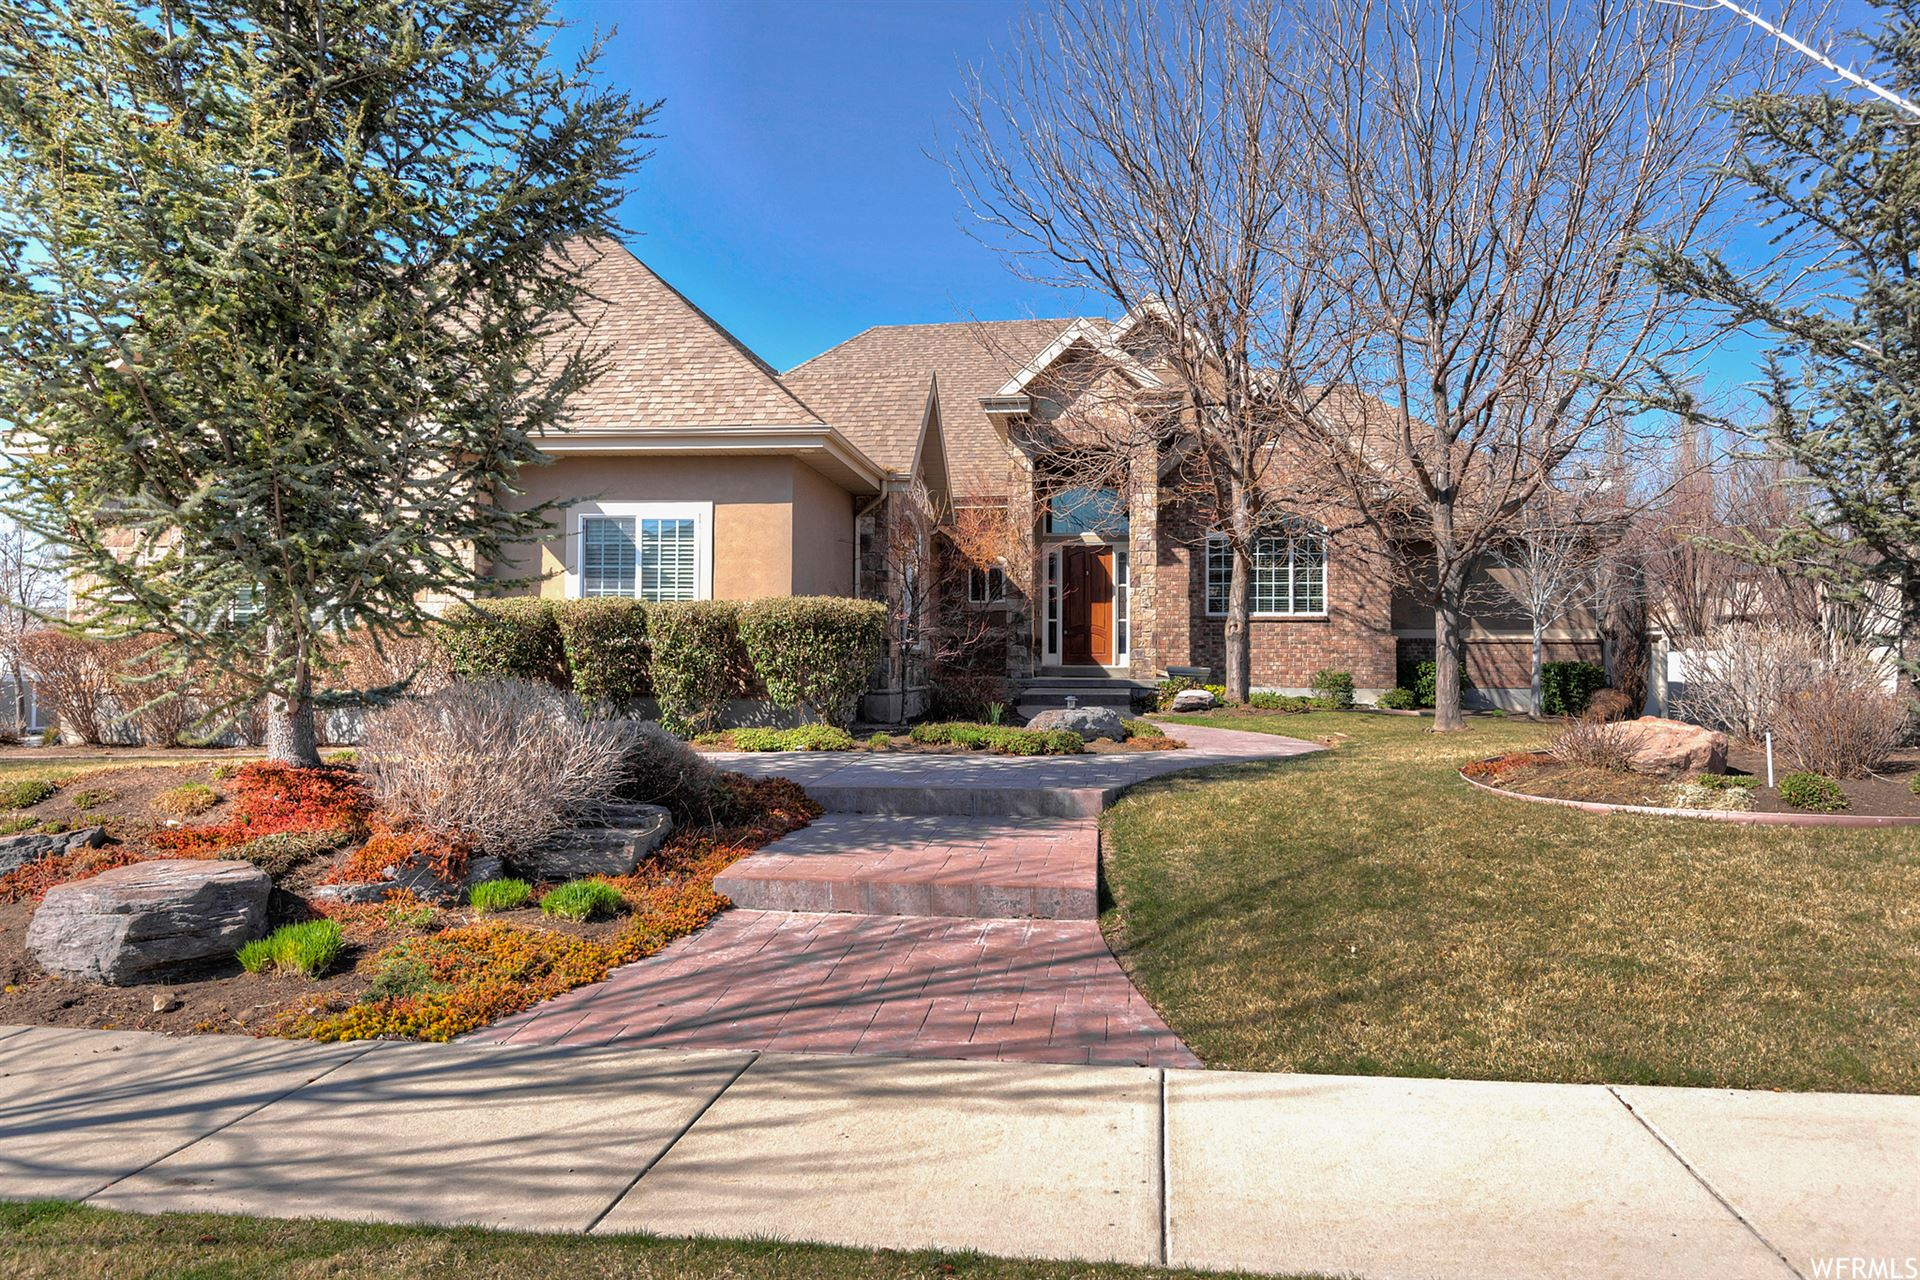 Photo of 1167 CABOT LN, Draper, UT 84020 (MLS # 1732720)